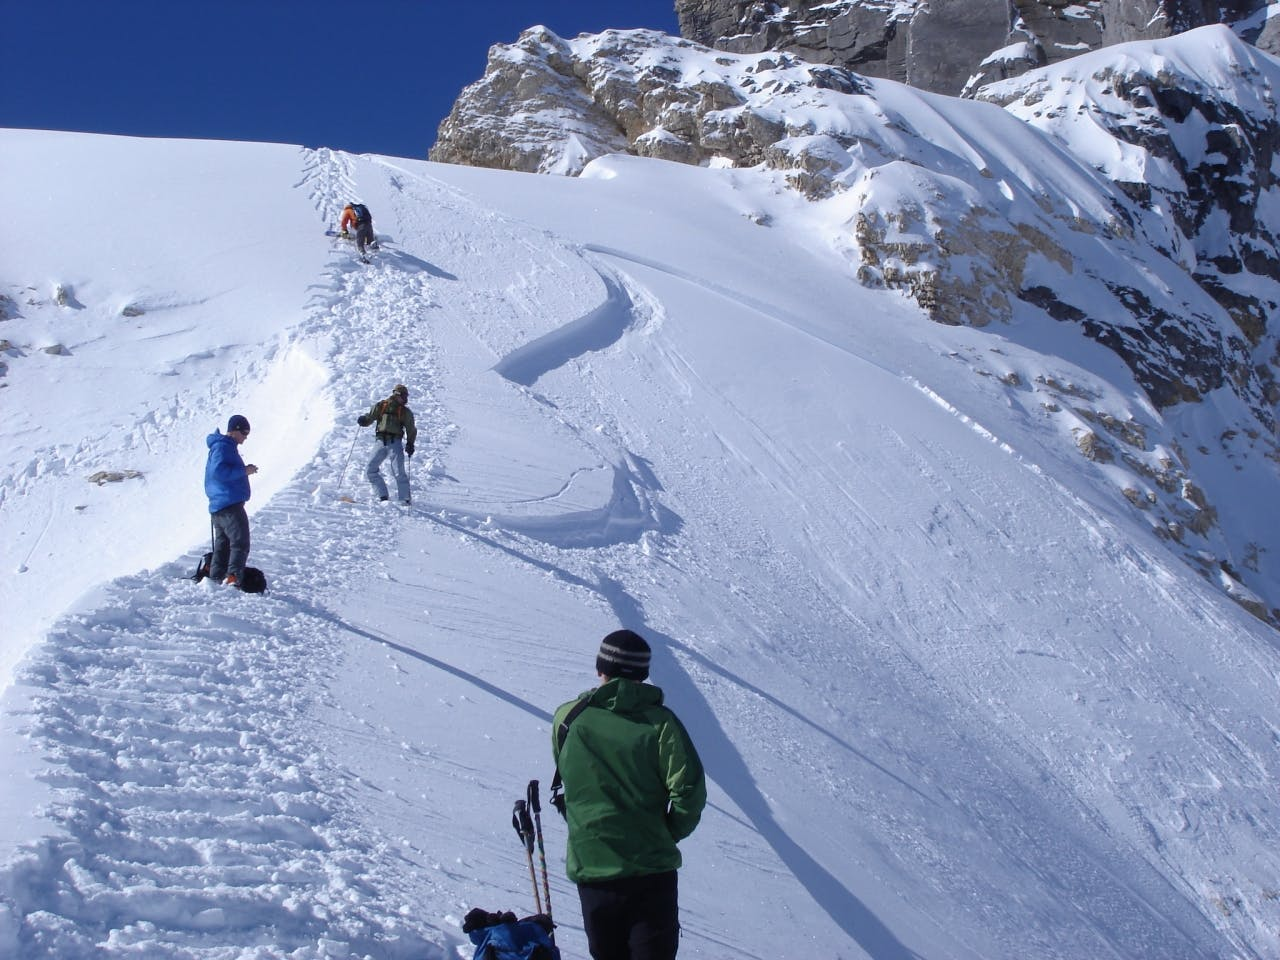 Backcountry skiers climb a safe ridge next to a slope which has just avalanched – if in doubt about the route, speak up